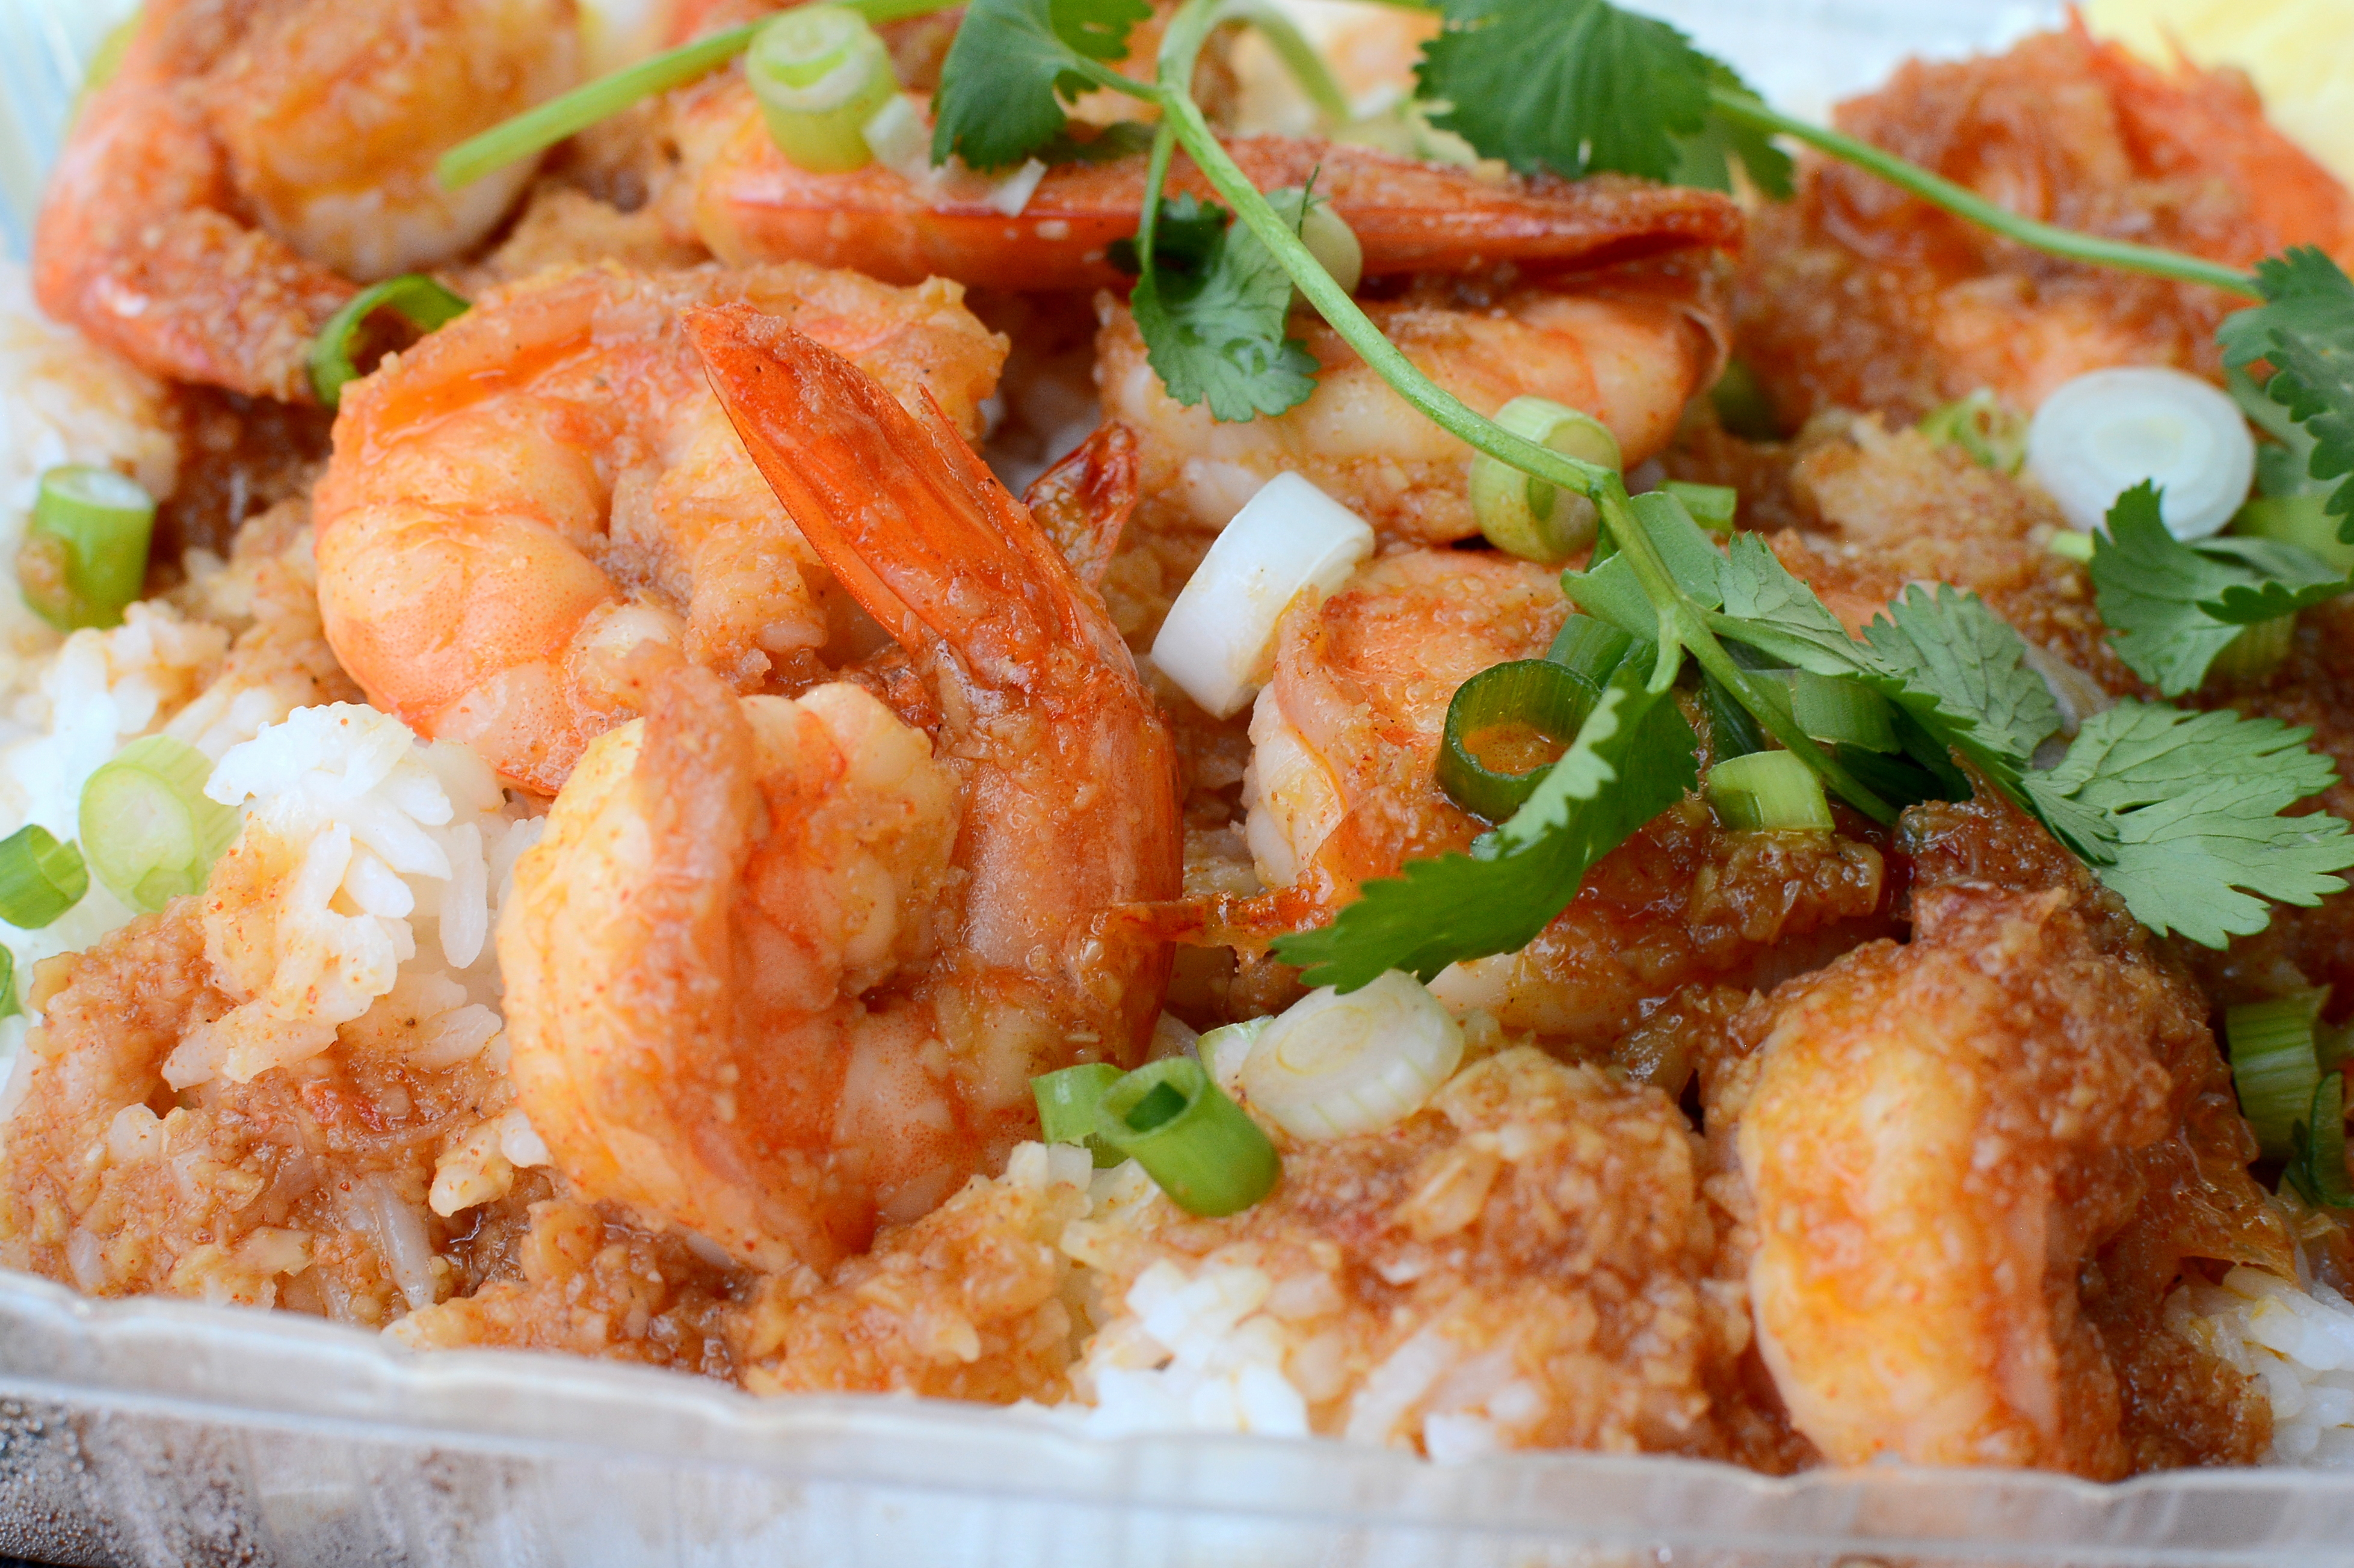 Garlic shrimp from A&J Seafood Shack in Long Beach.